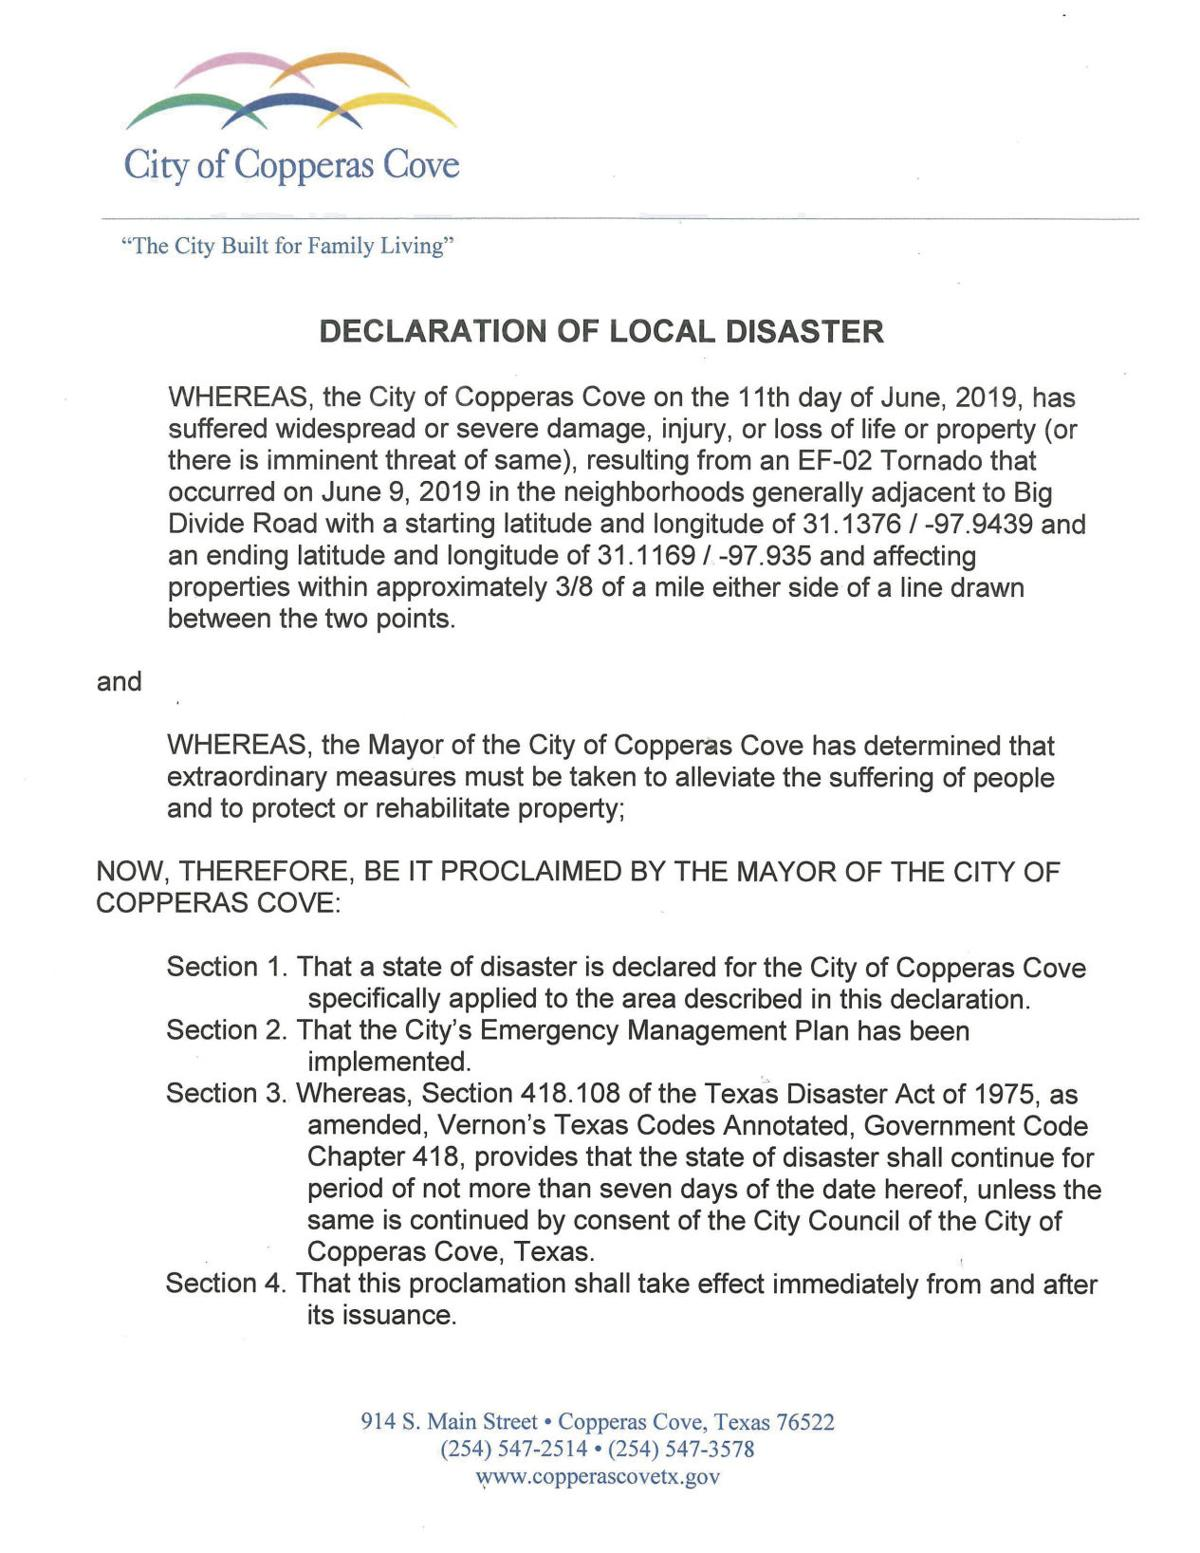 Cove disaster proclamation